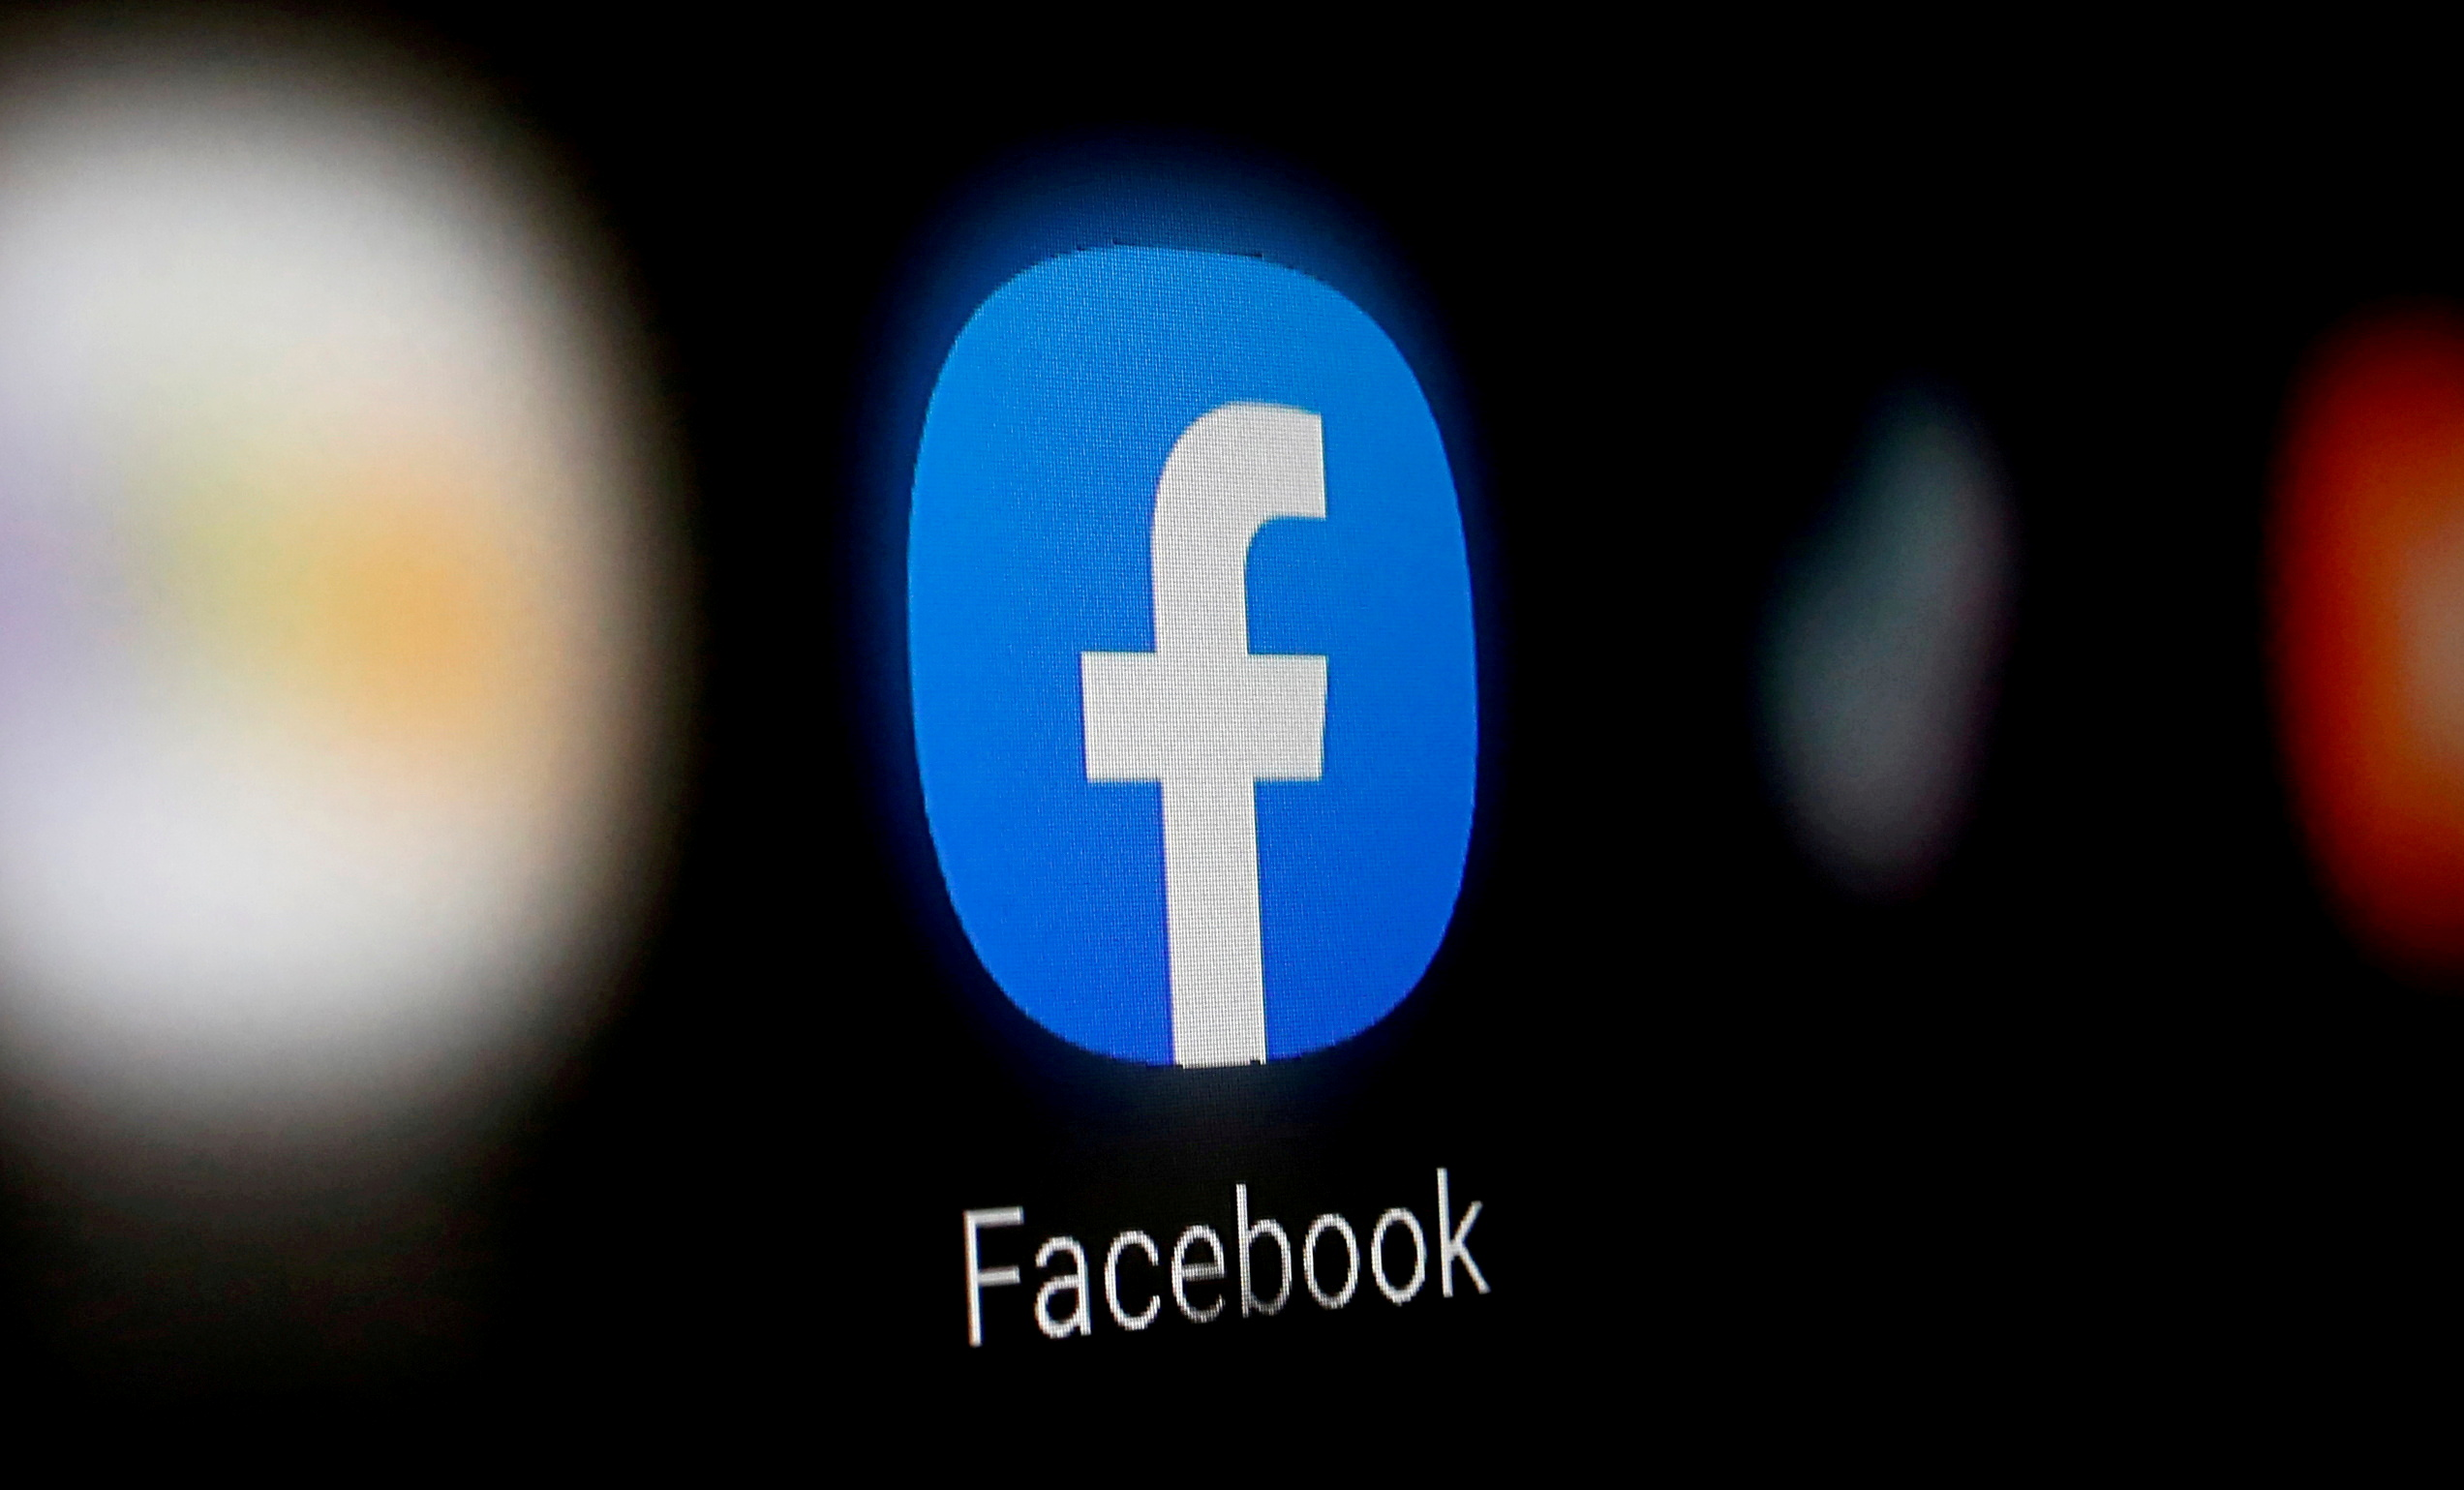 A Facebook logo is displayed on a smartphone in this illustration taken January 6, 2020. REUTERS/Dado Ruvic/File Photo